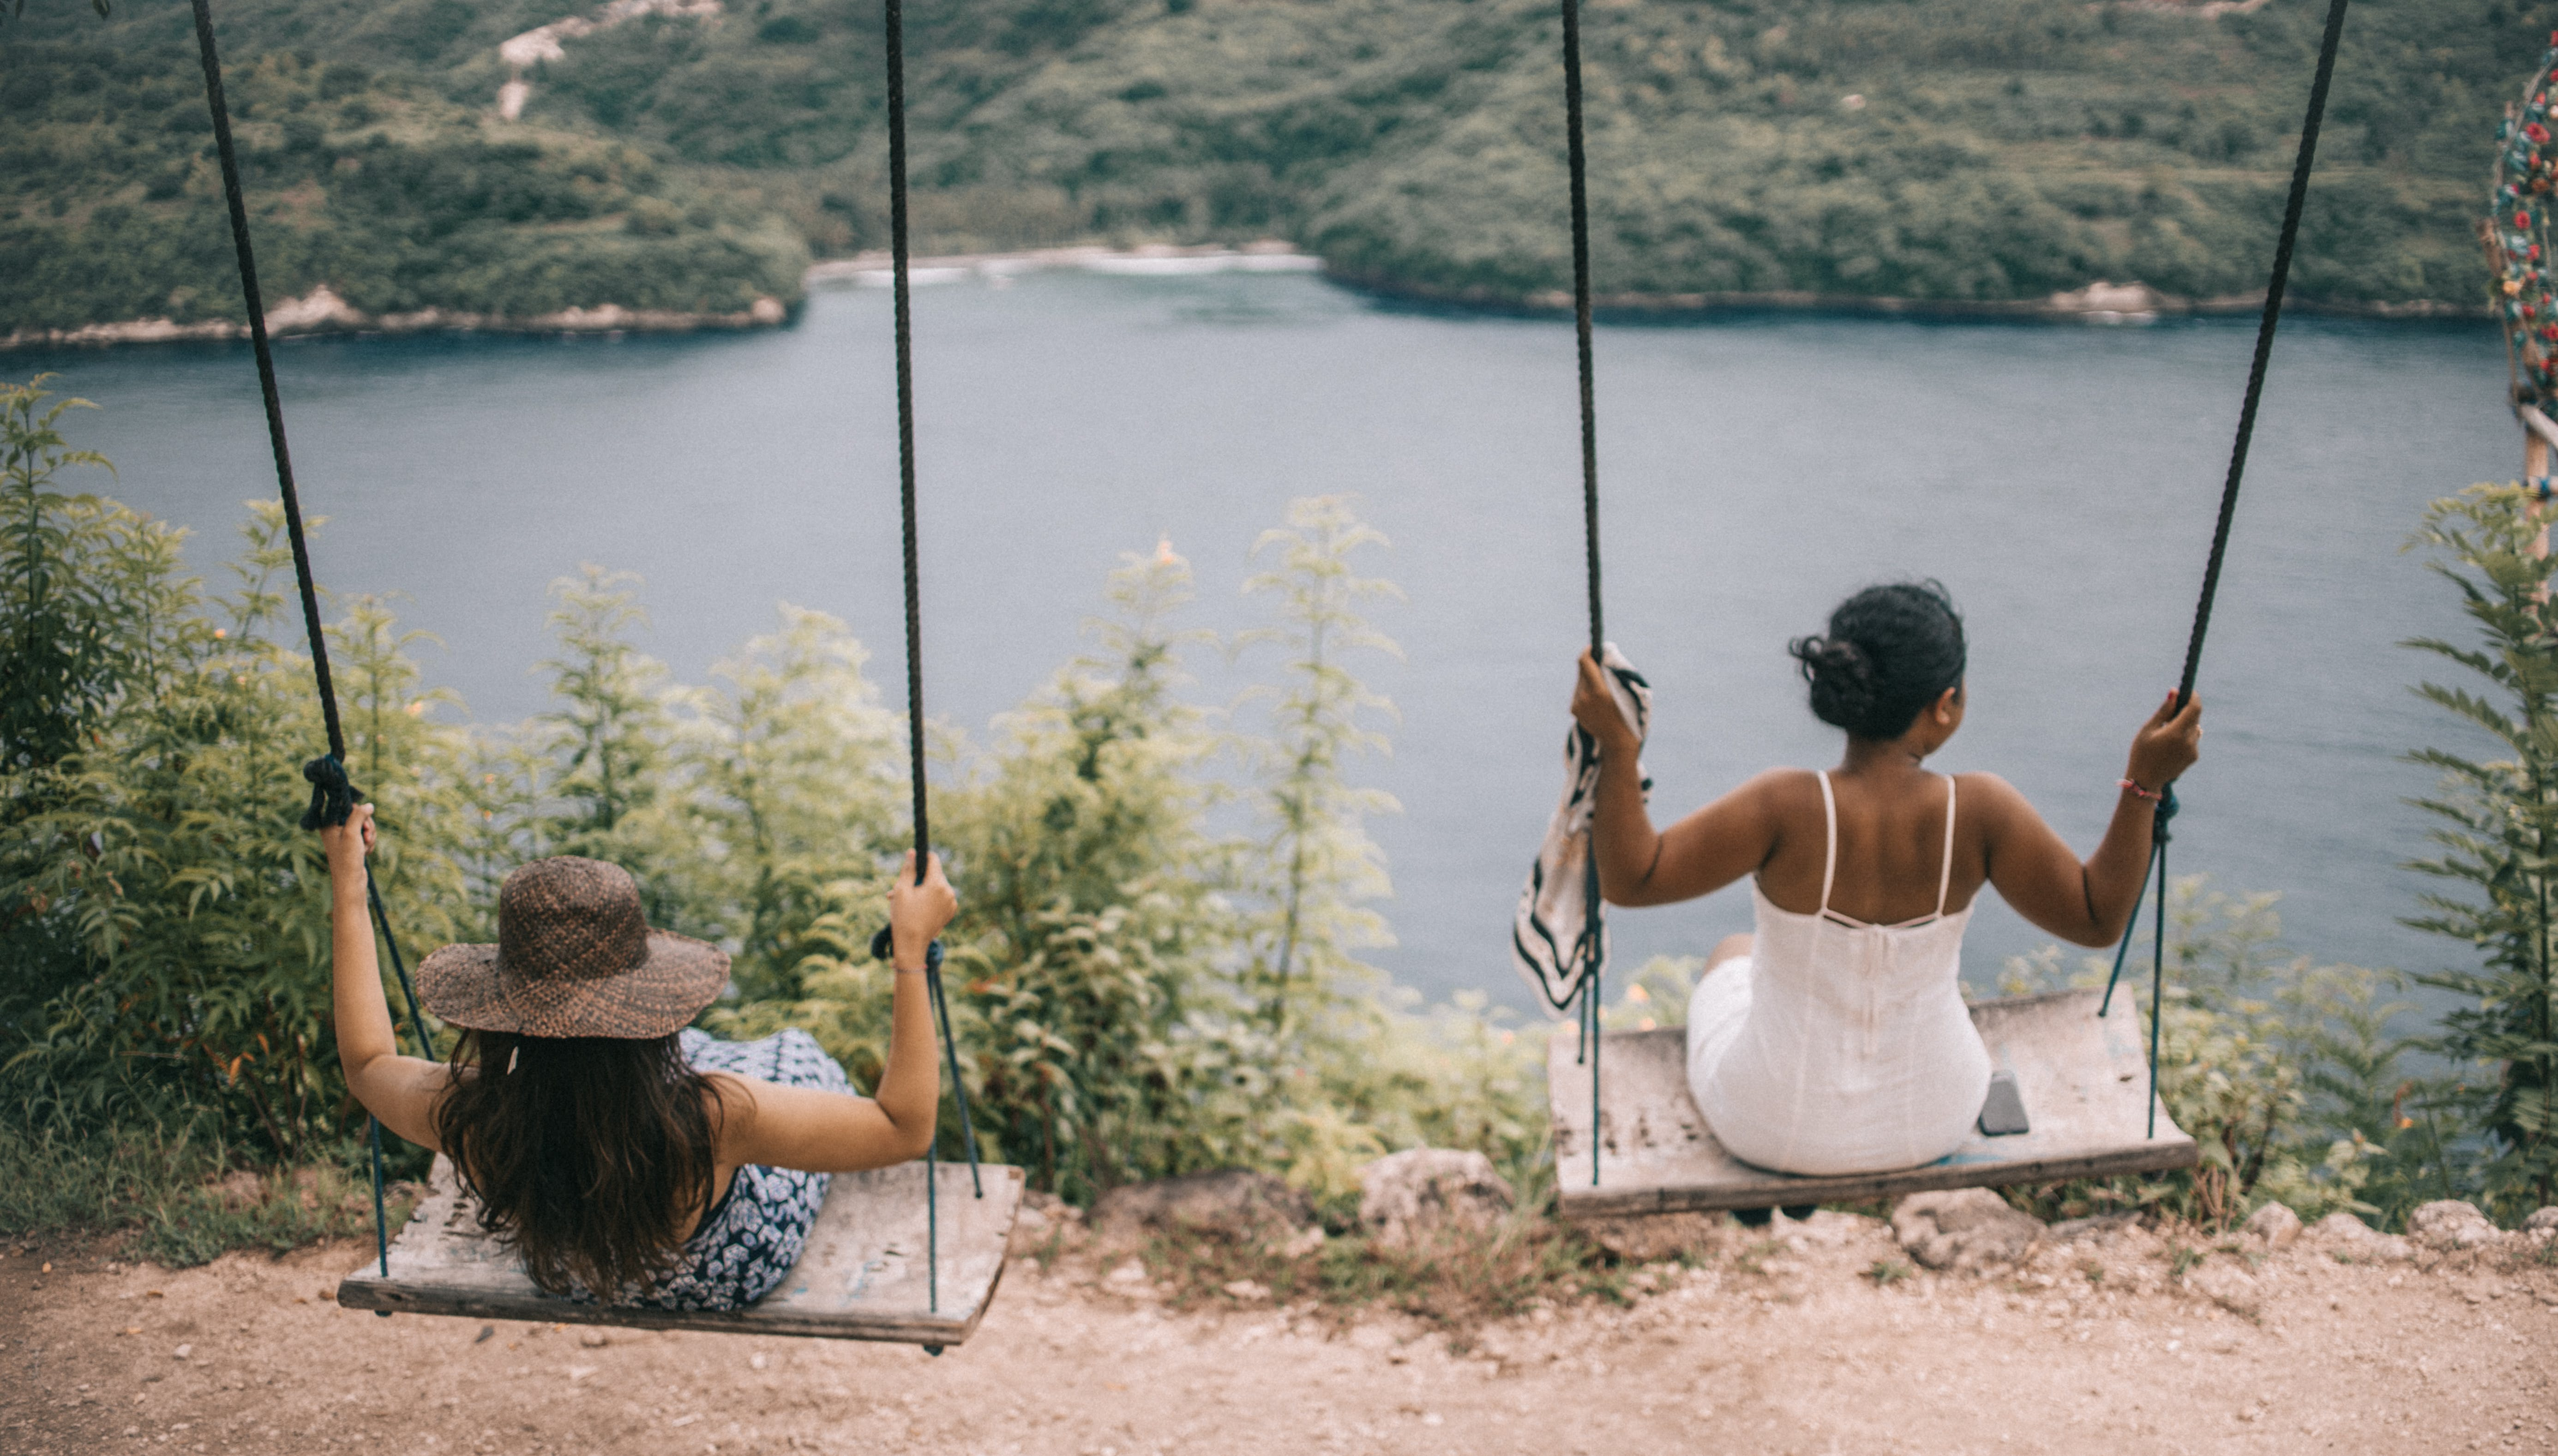 Photograph of Two Girls on a swing